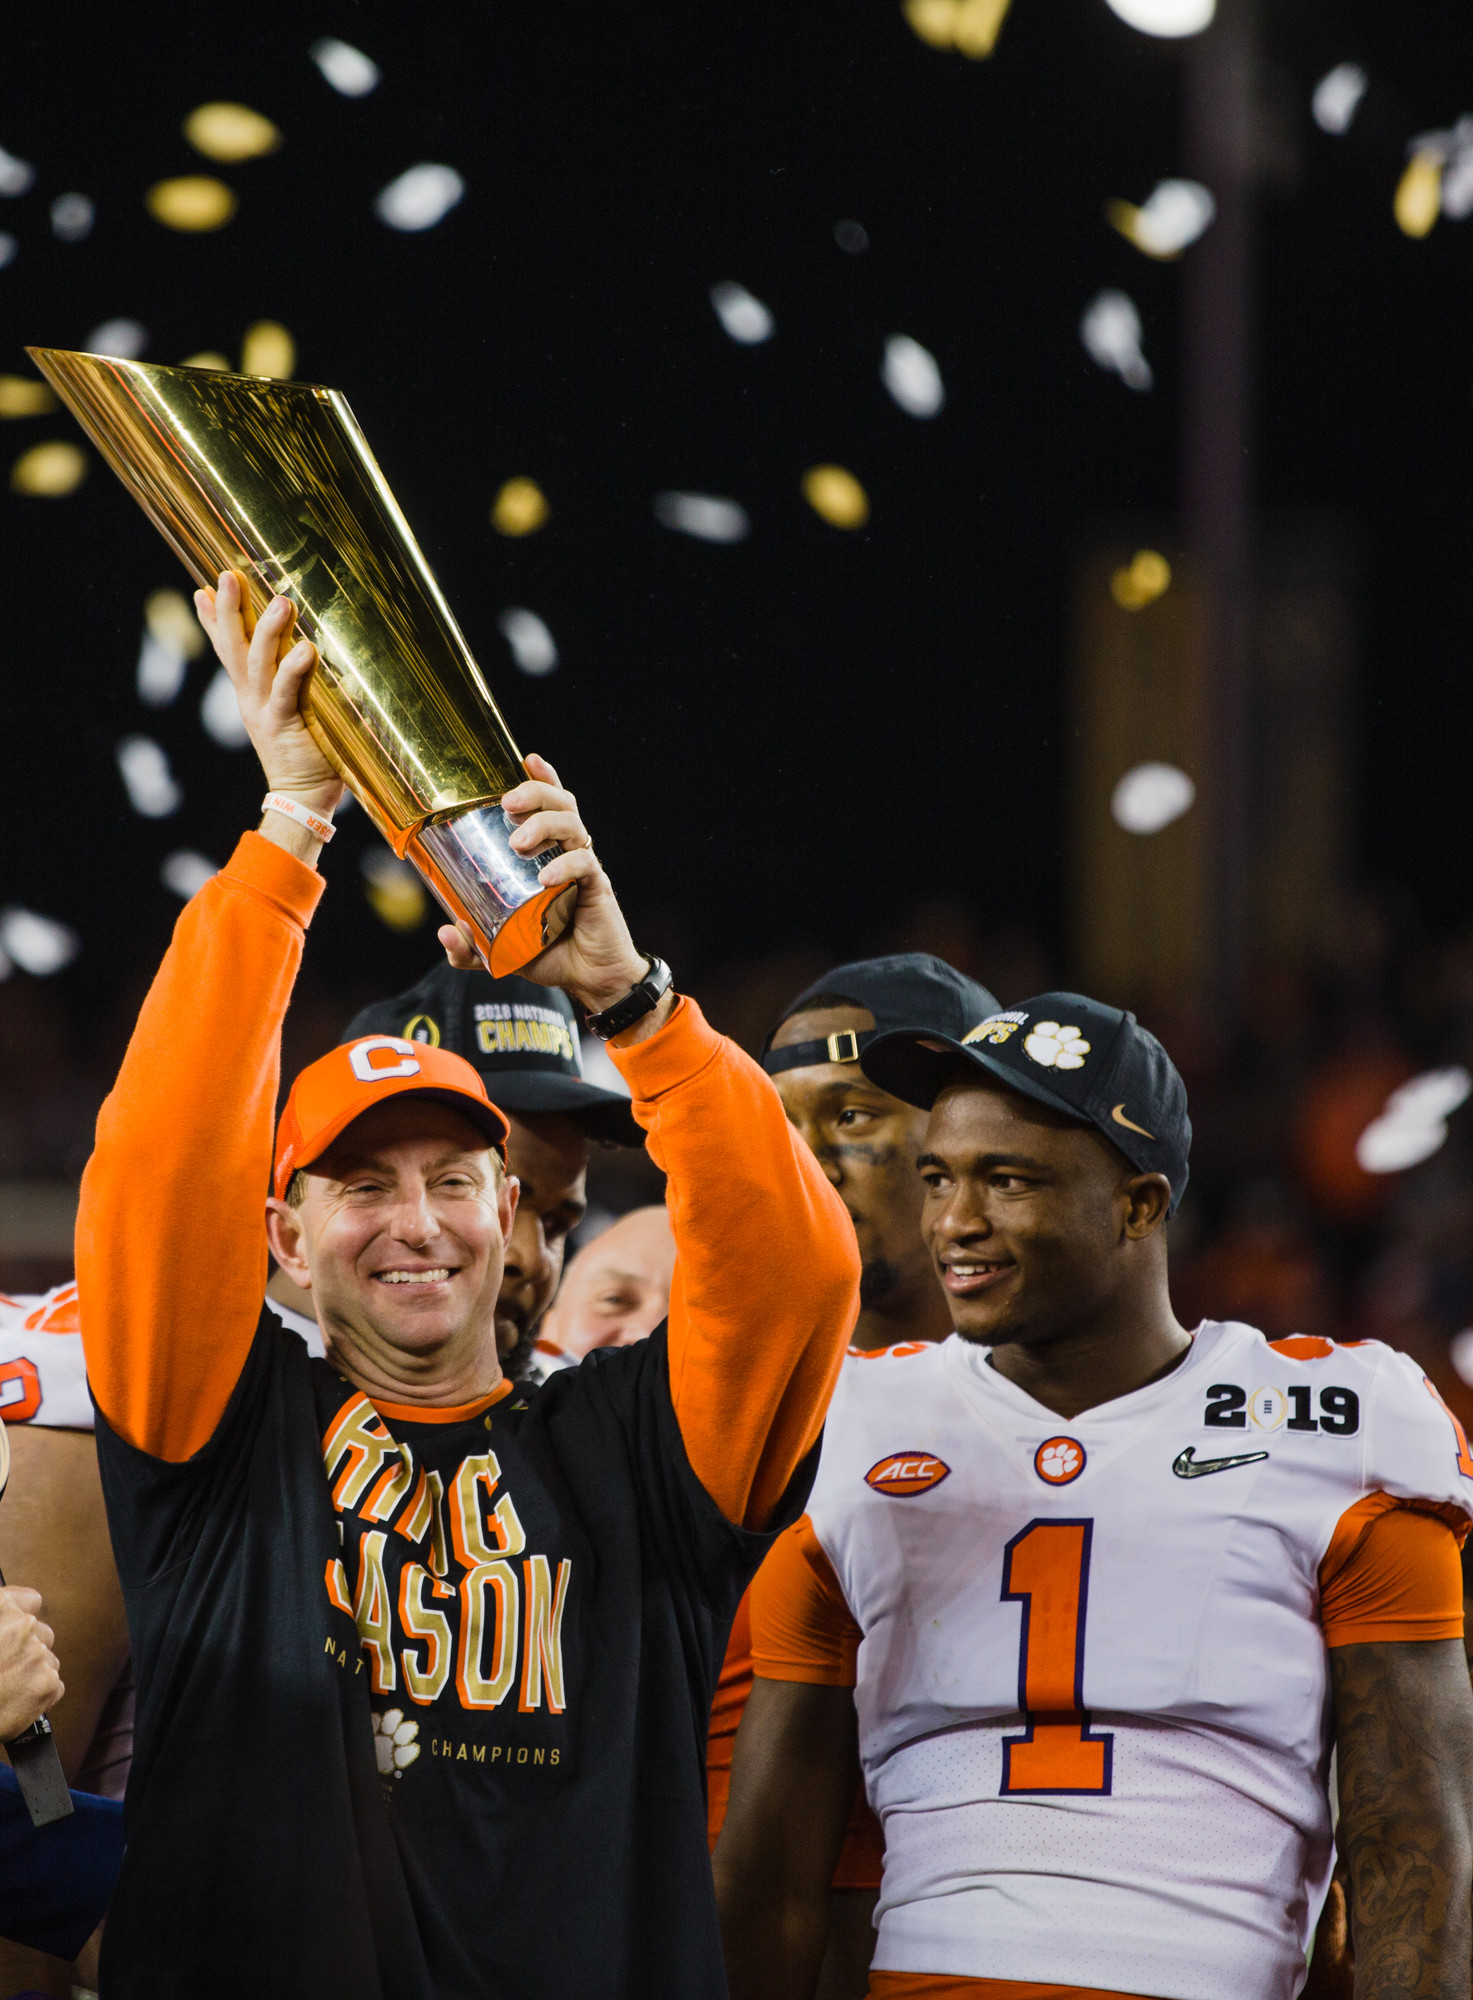 Clemson head coach Dabo Swinney hoists the 2019 CFP National Championship trophy as cornerback Trayvon Mullen, the game's defensive MVP, looks on at Levi's Stadium in Santa Clara, California, on Monday, Jan. 7 after the Tigers routed Alabama 44-16.